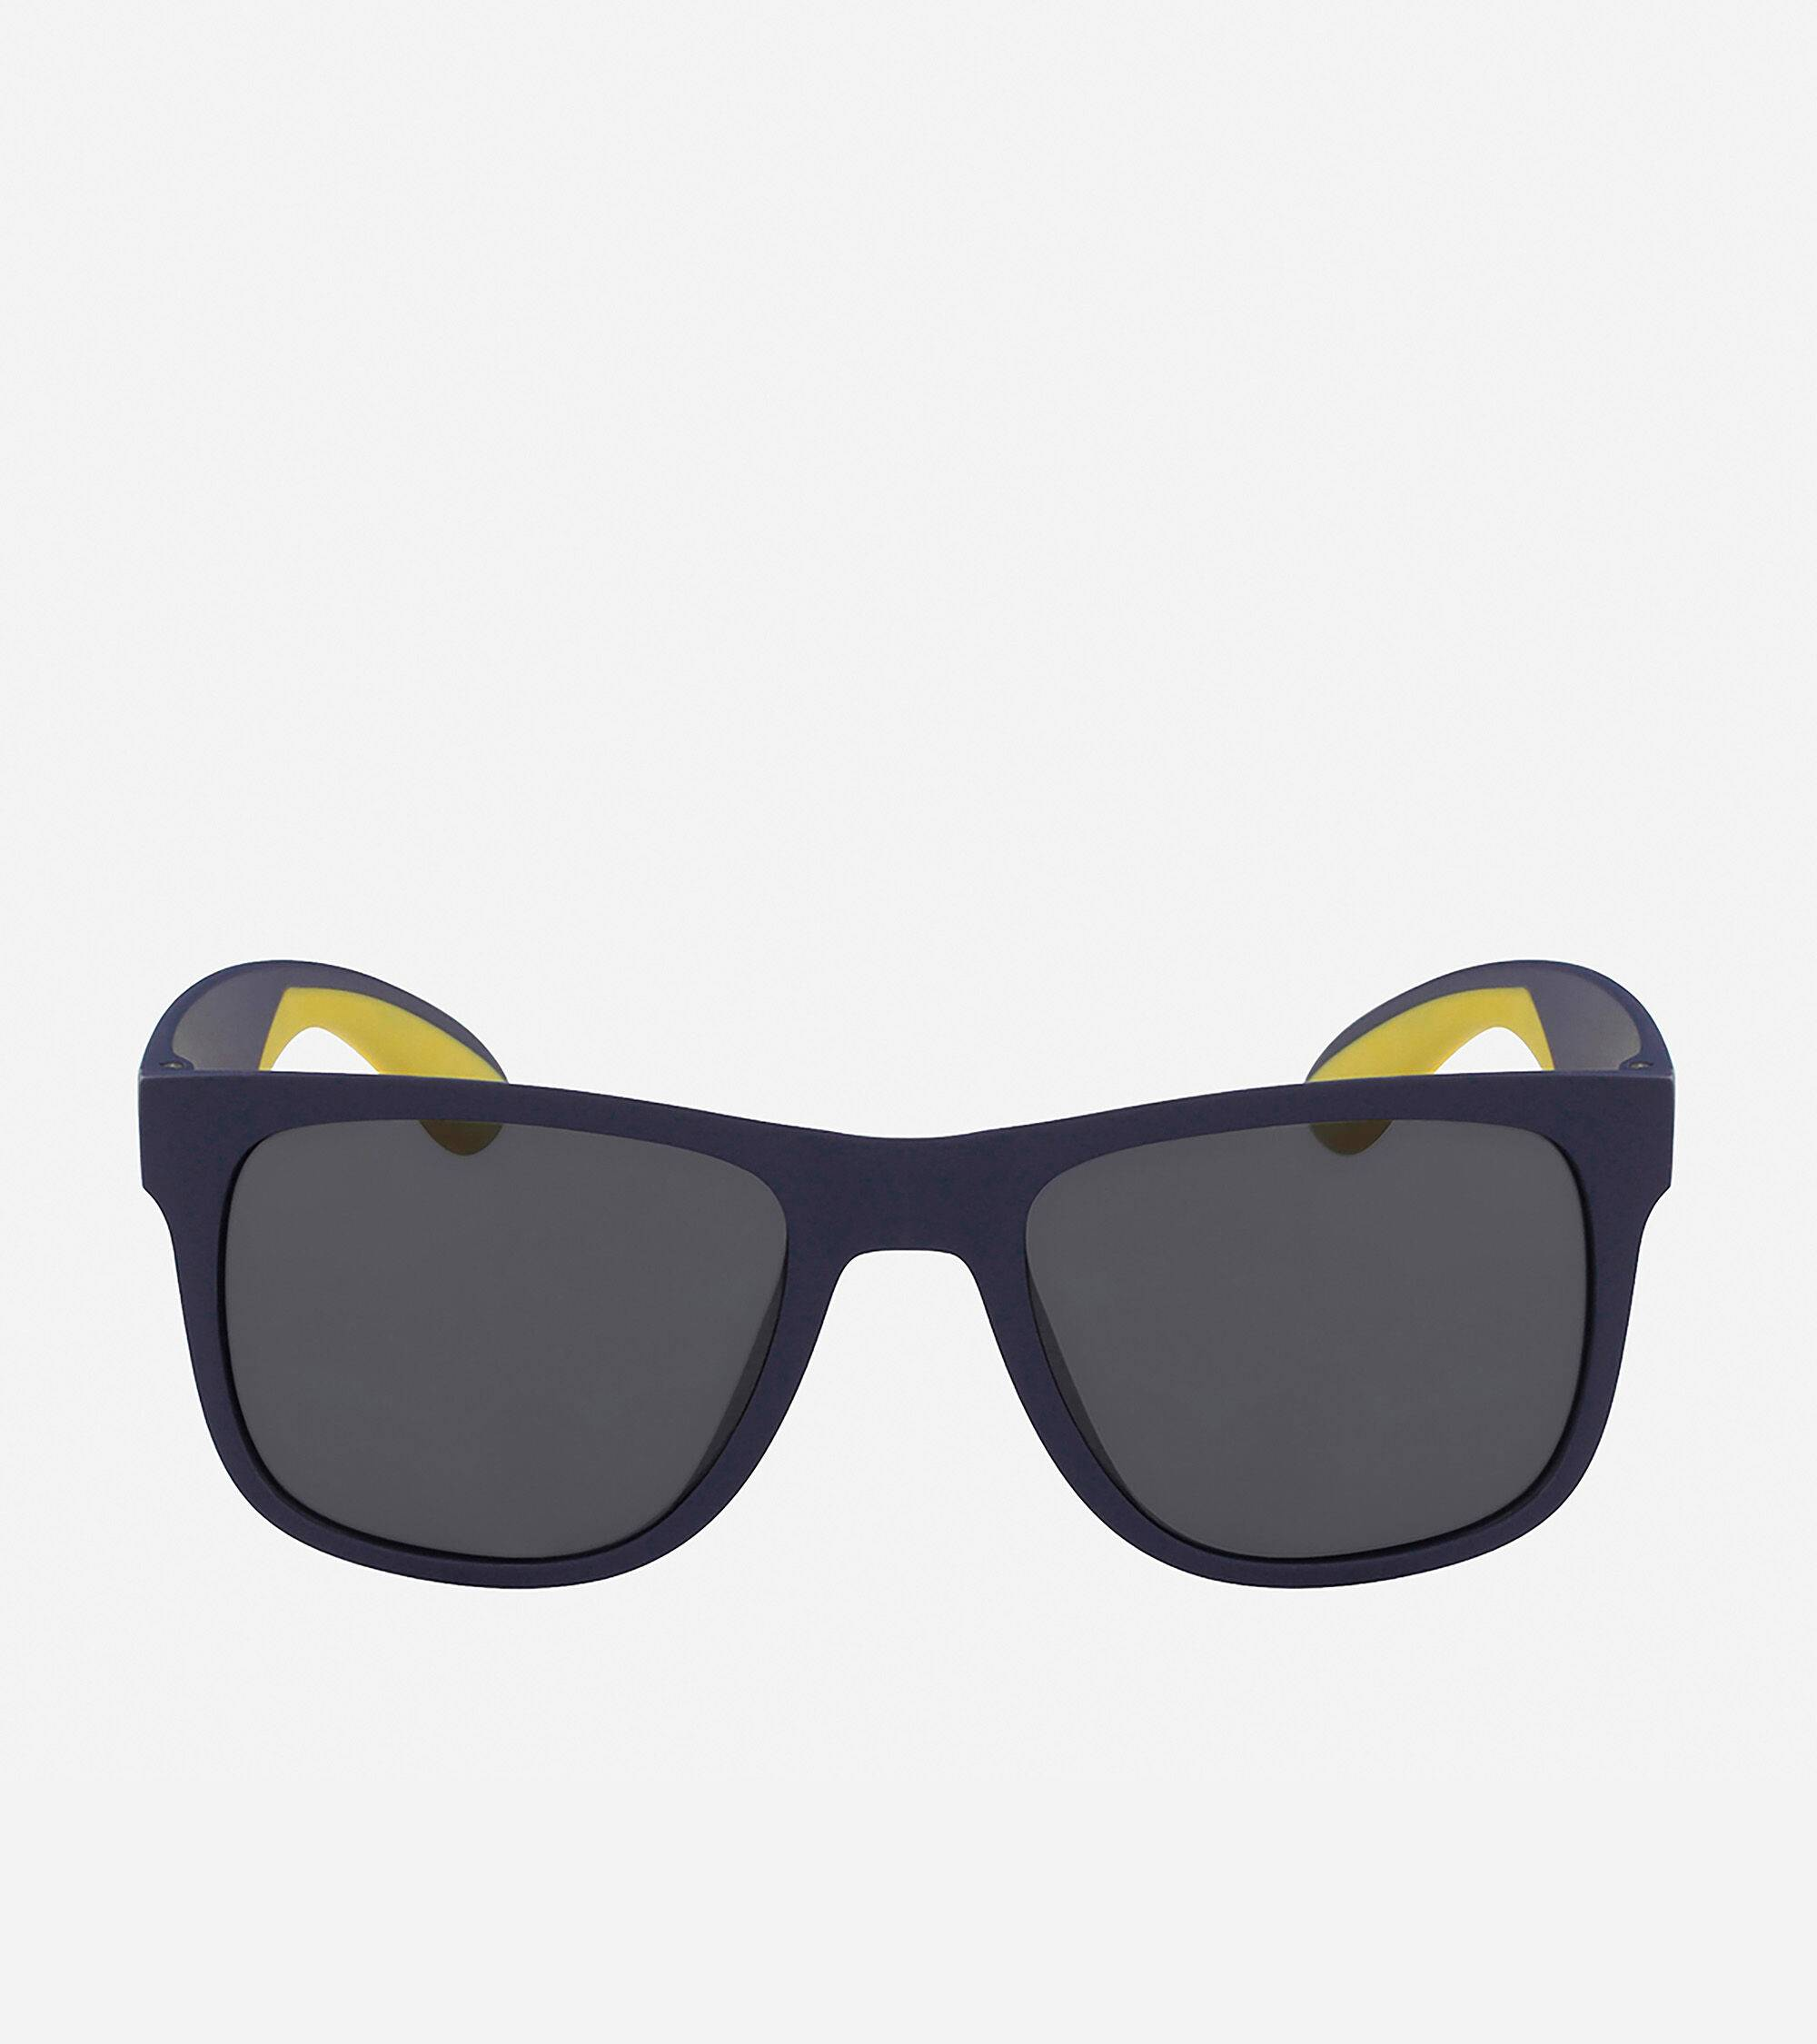 Cole Haan Sport Rectangle Sunglasses - Navy - Size: OSFA